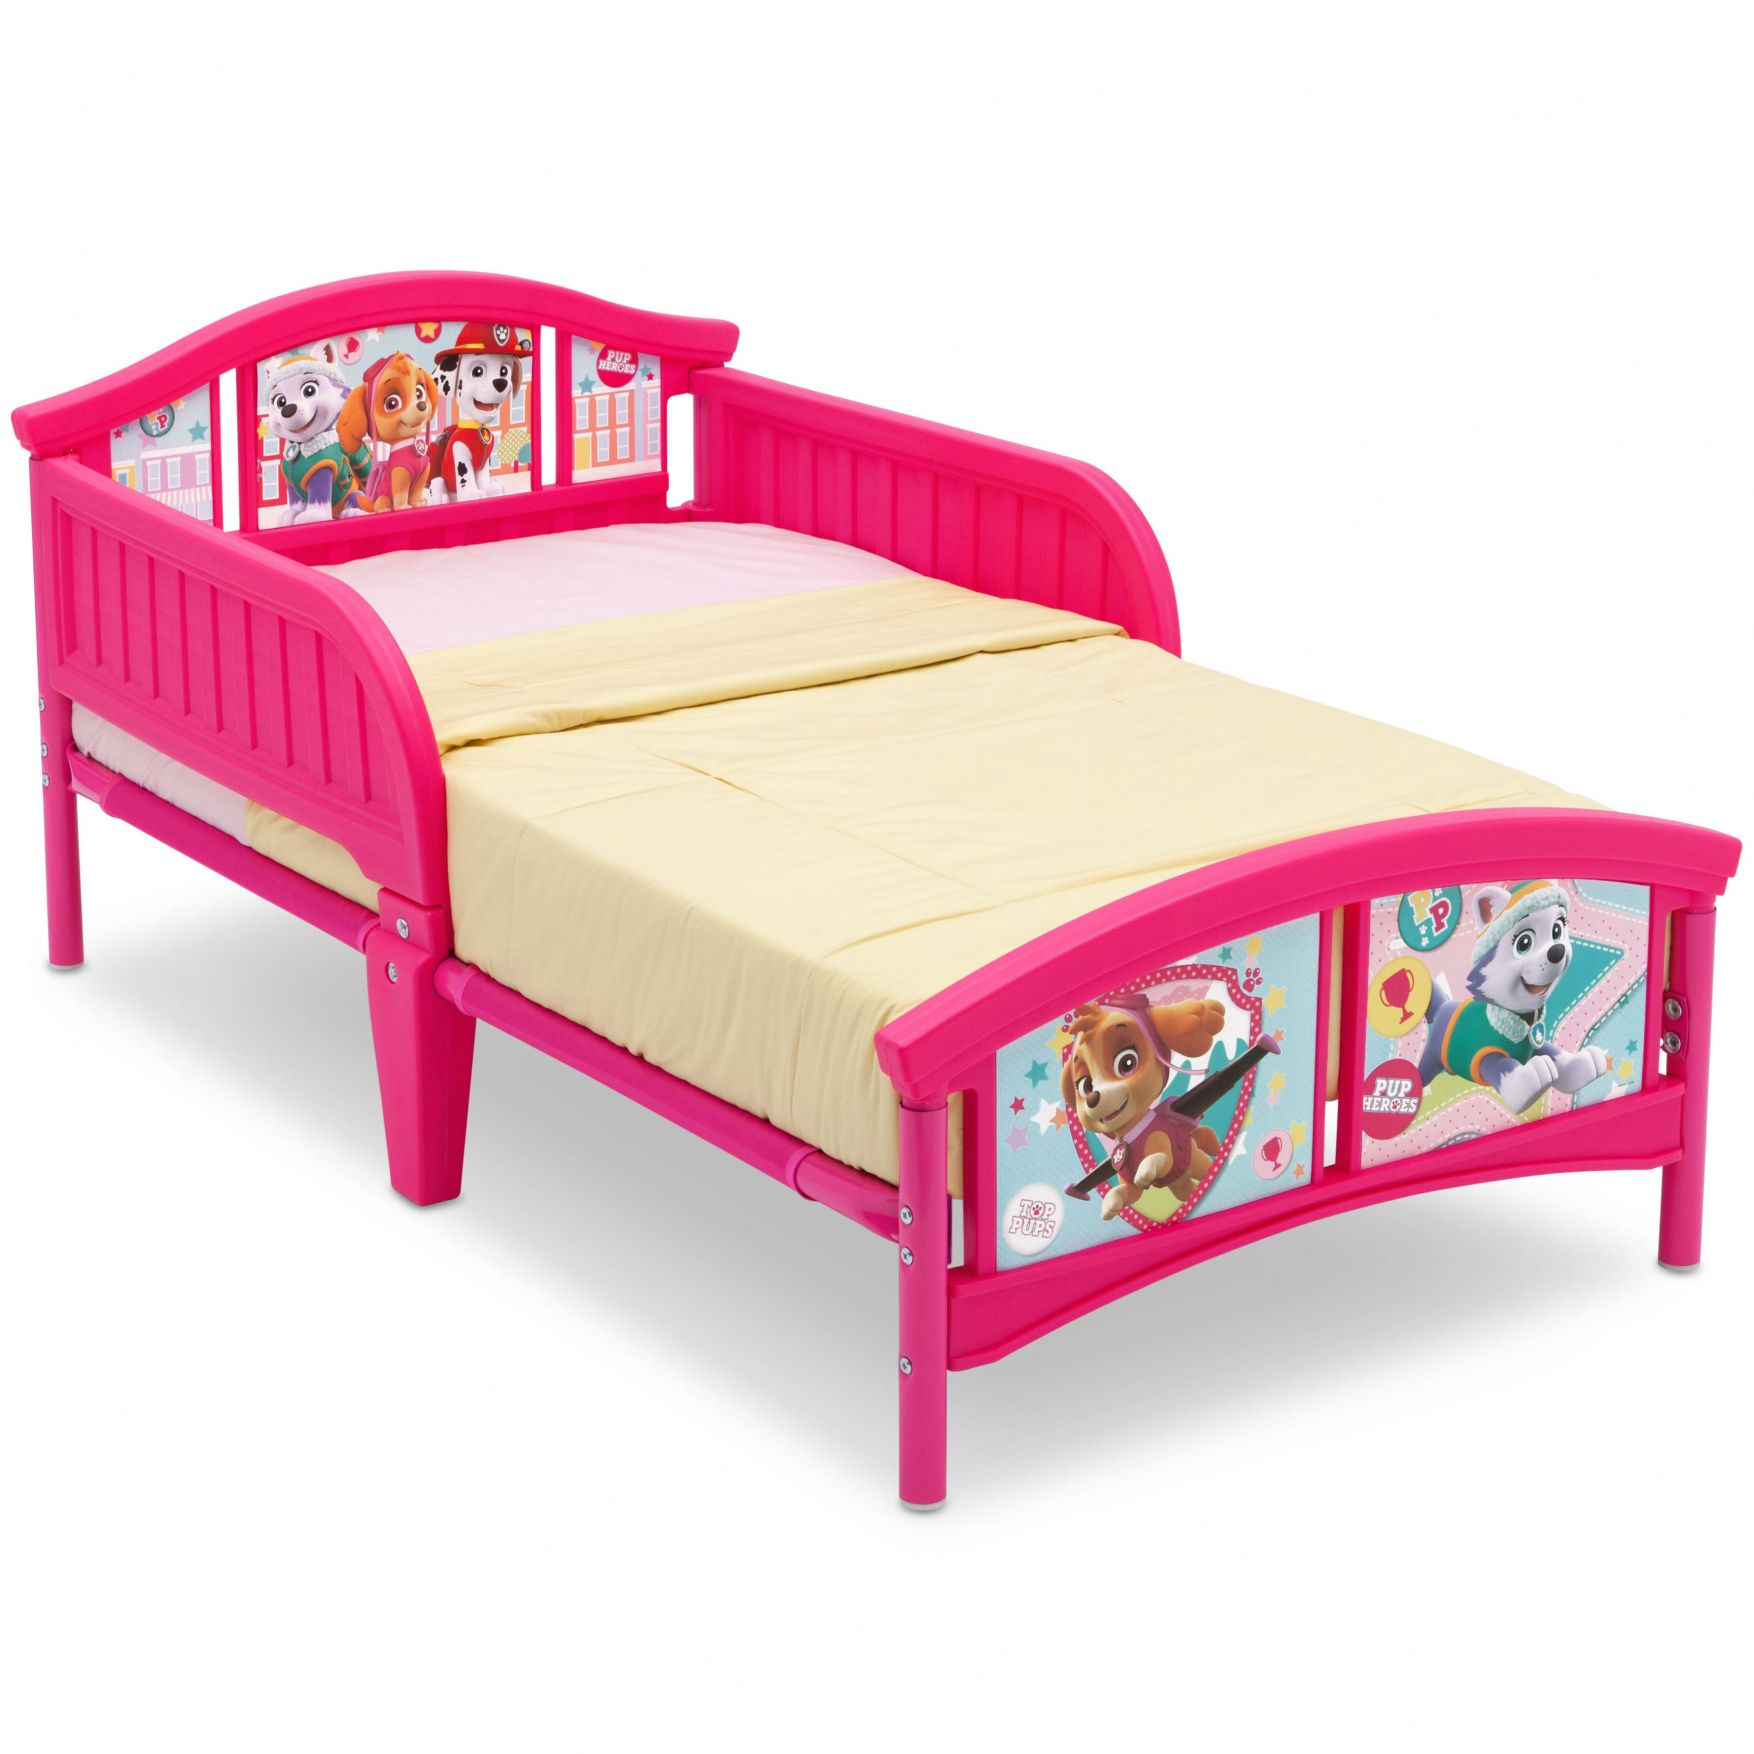 70 how long are toddler beds country bedroom decorating ideas